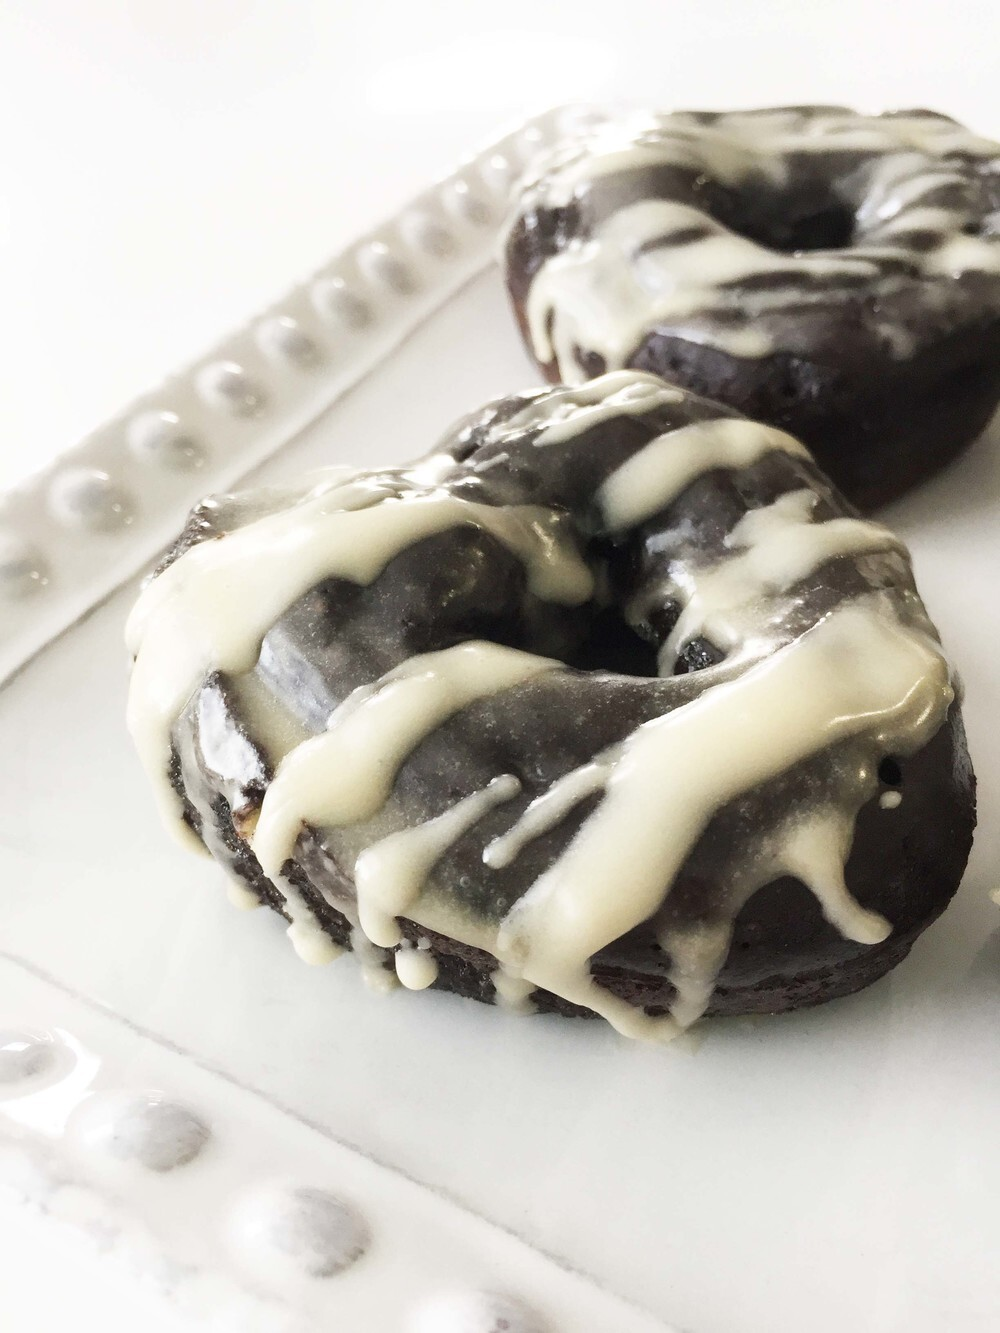 Baked Dark Chocolate Coffee Infused Donuts (Sponsored)